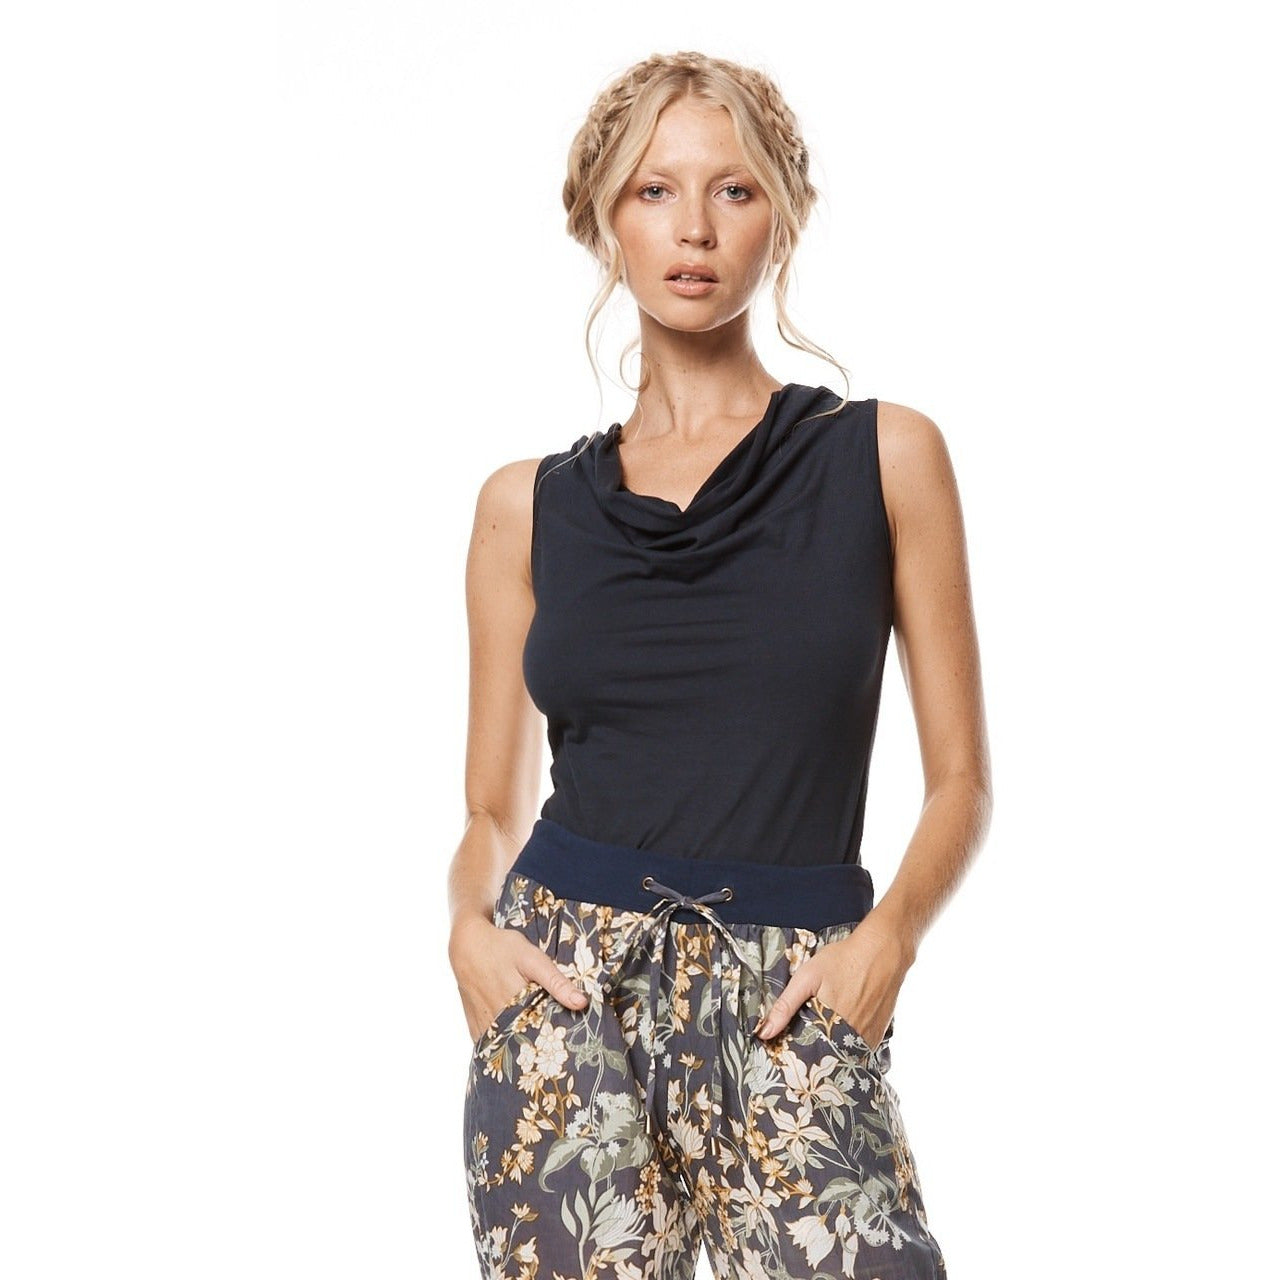 MahaShe Rosa Top in Storm